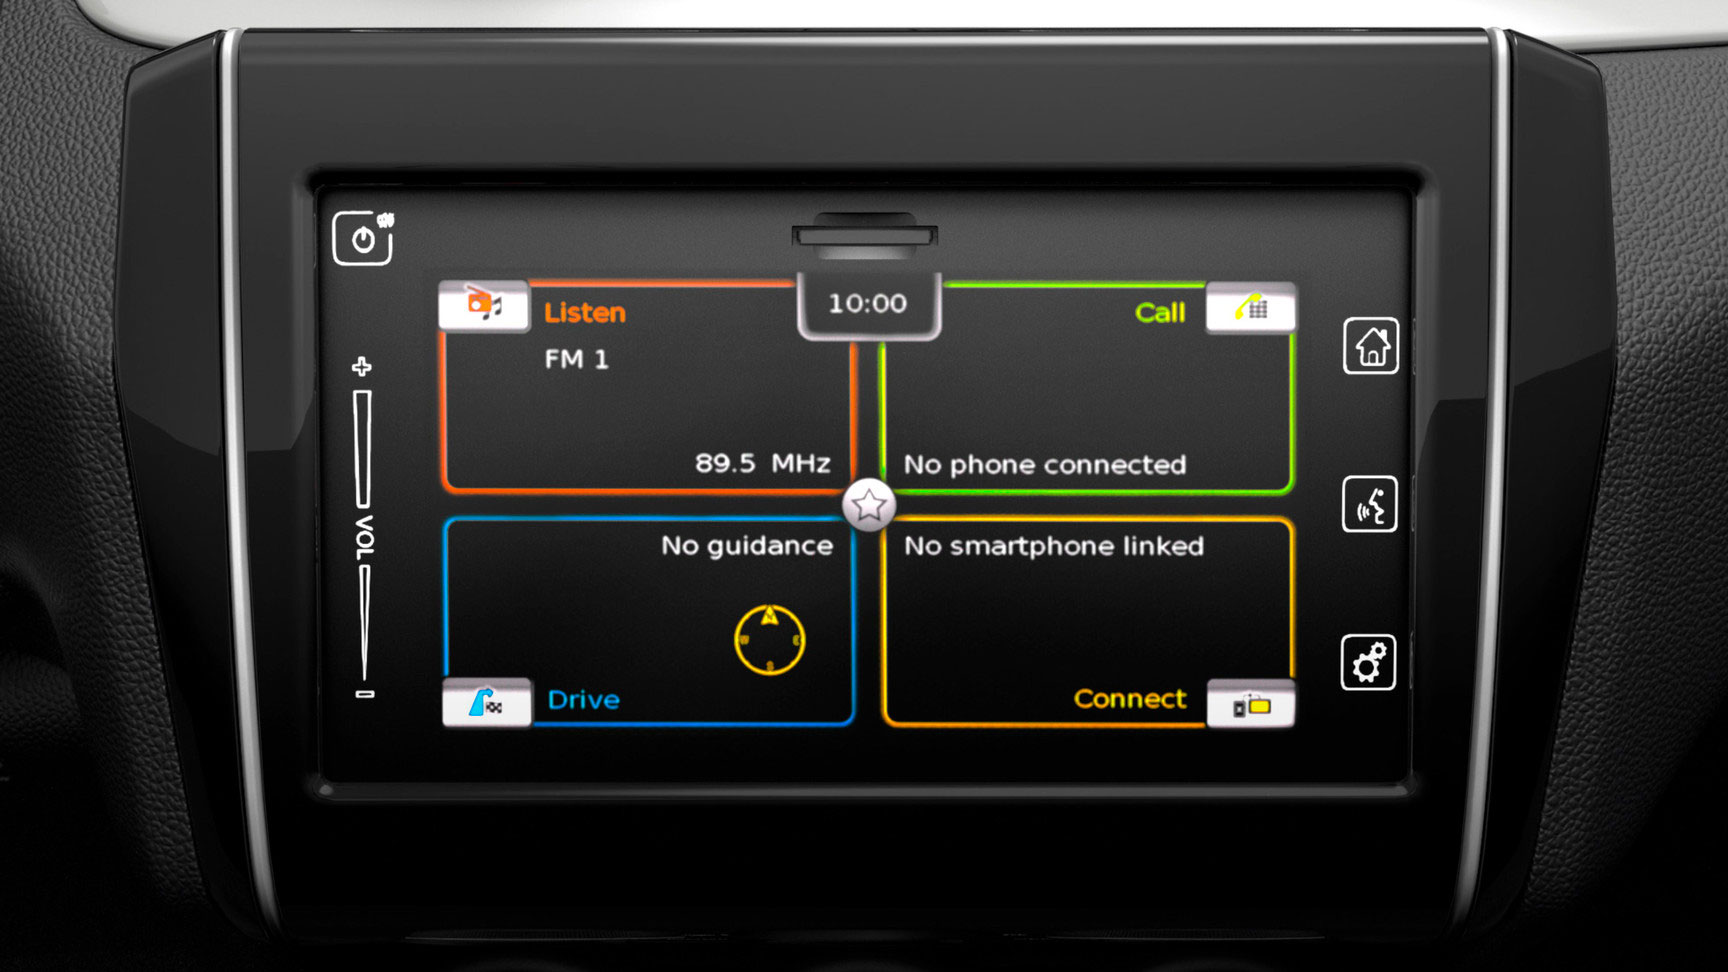 7-inch colour touchscreen